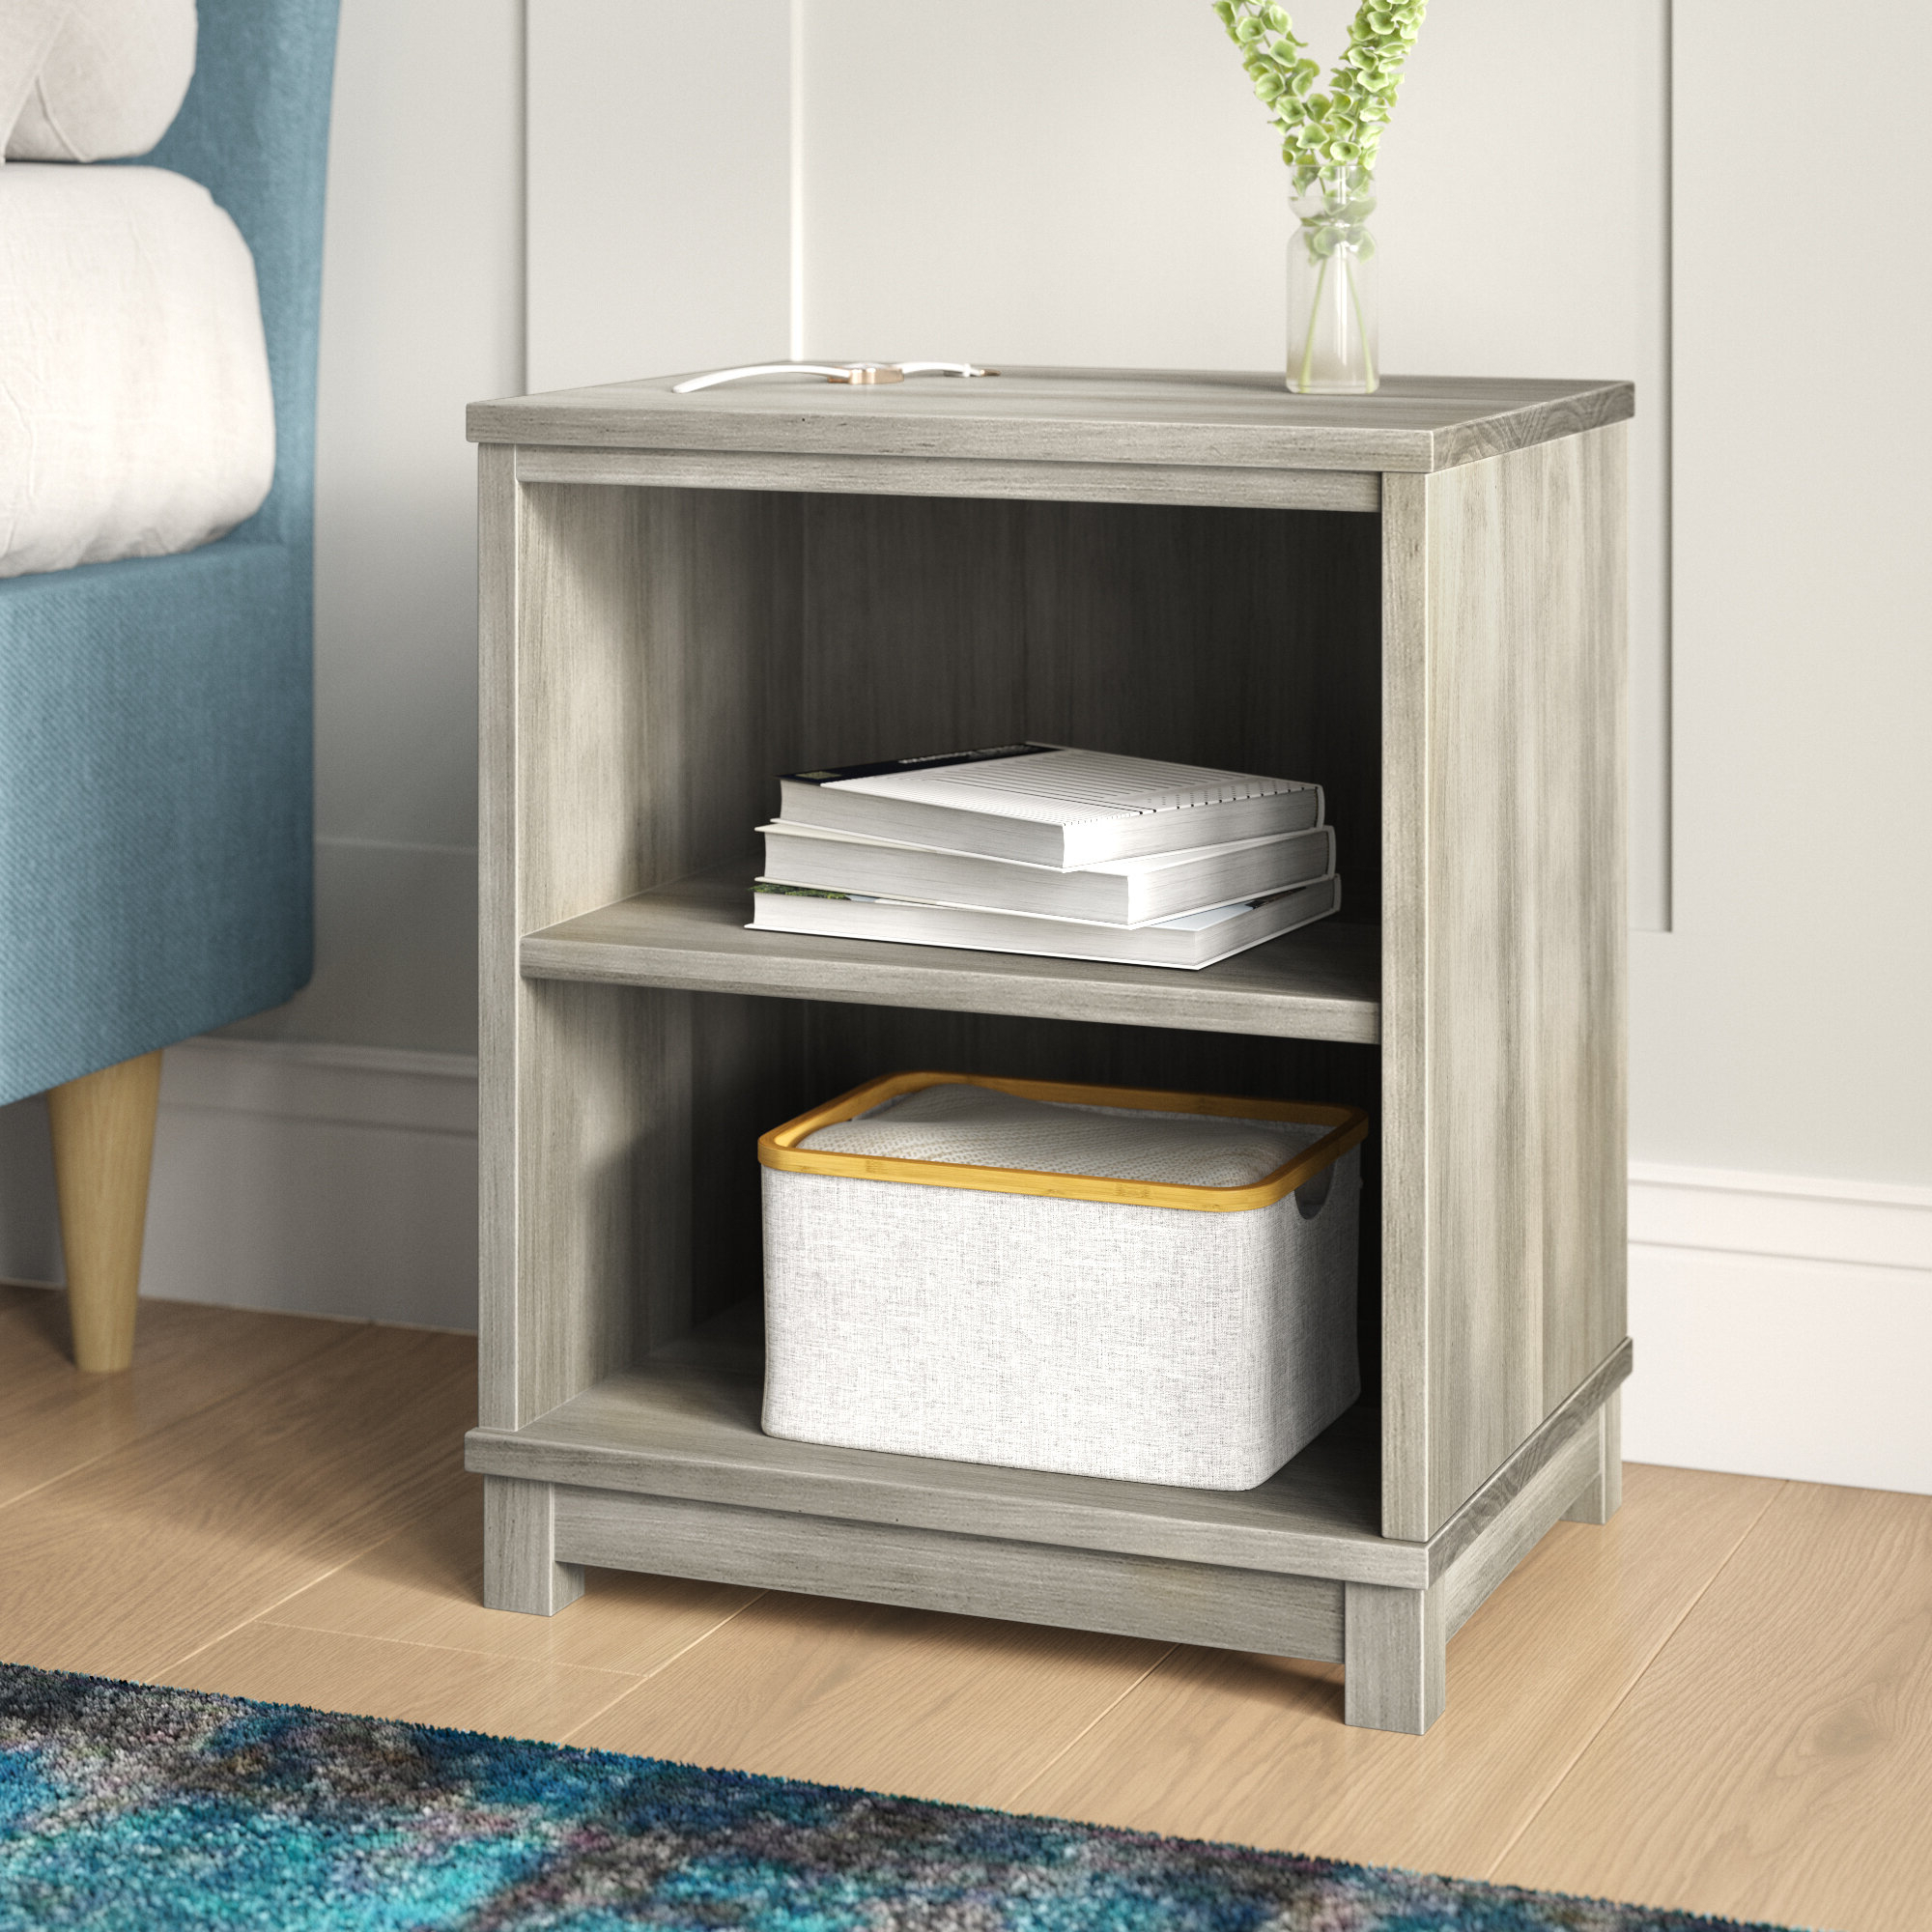 Well Known Krausgrill Standard Bookcases Throughout Kronqui Standard Bookcase (View 18 of 20)